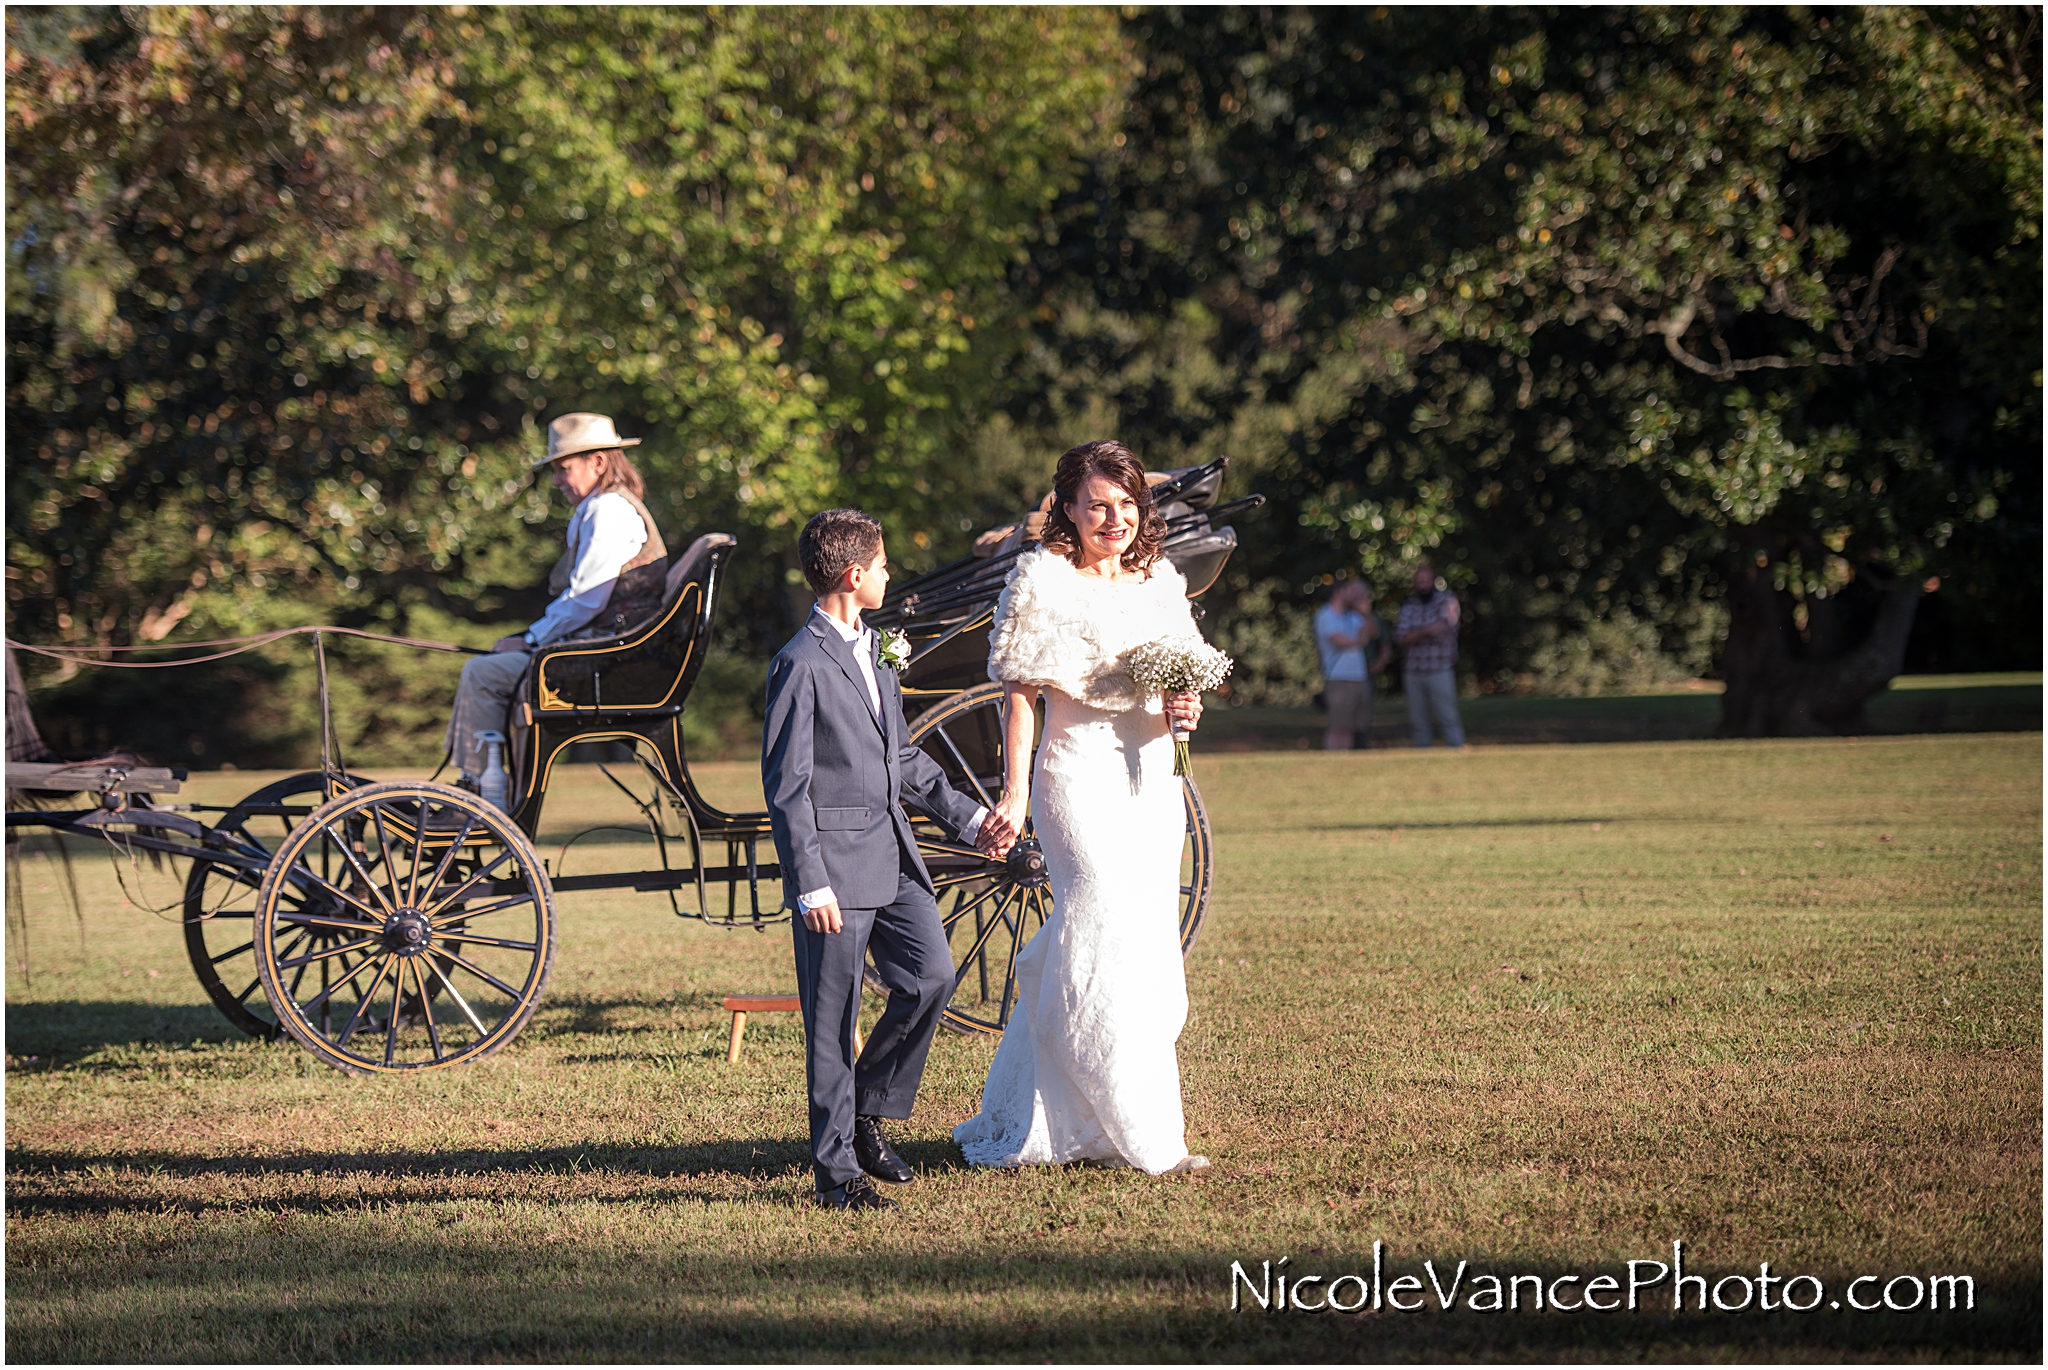 The bride is escorted to the ceremony by her son at Maymont Park.